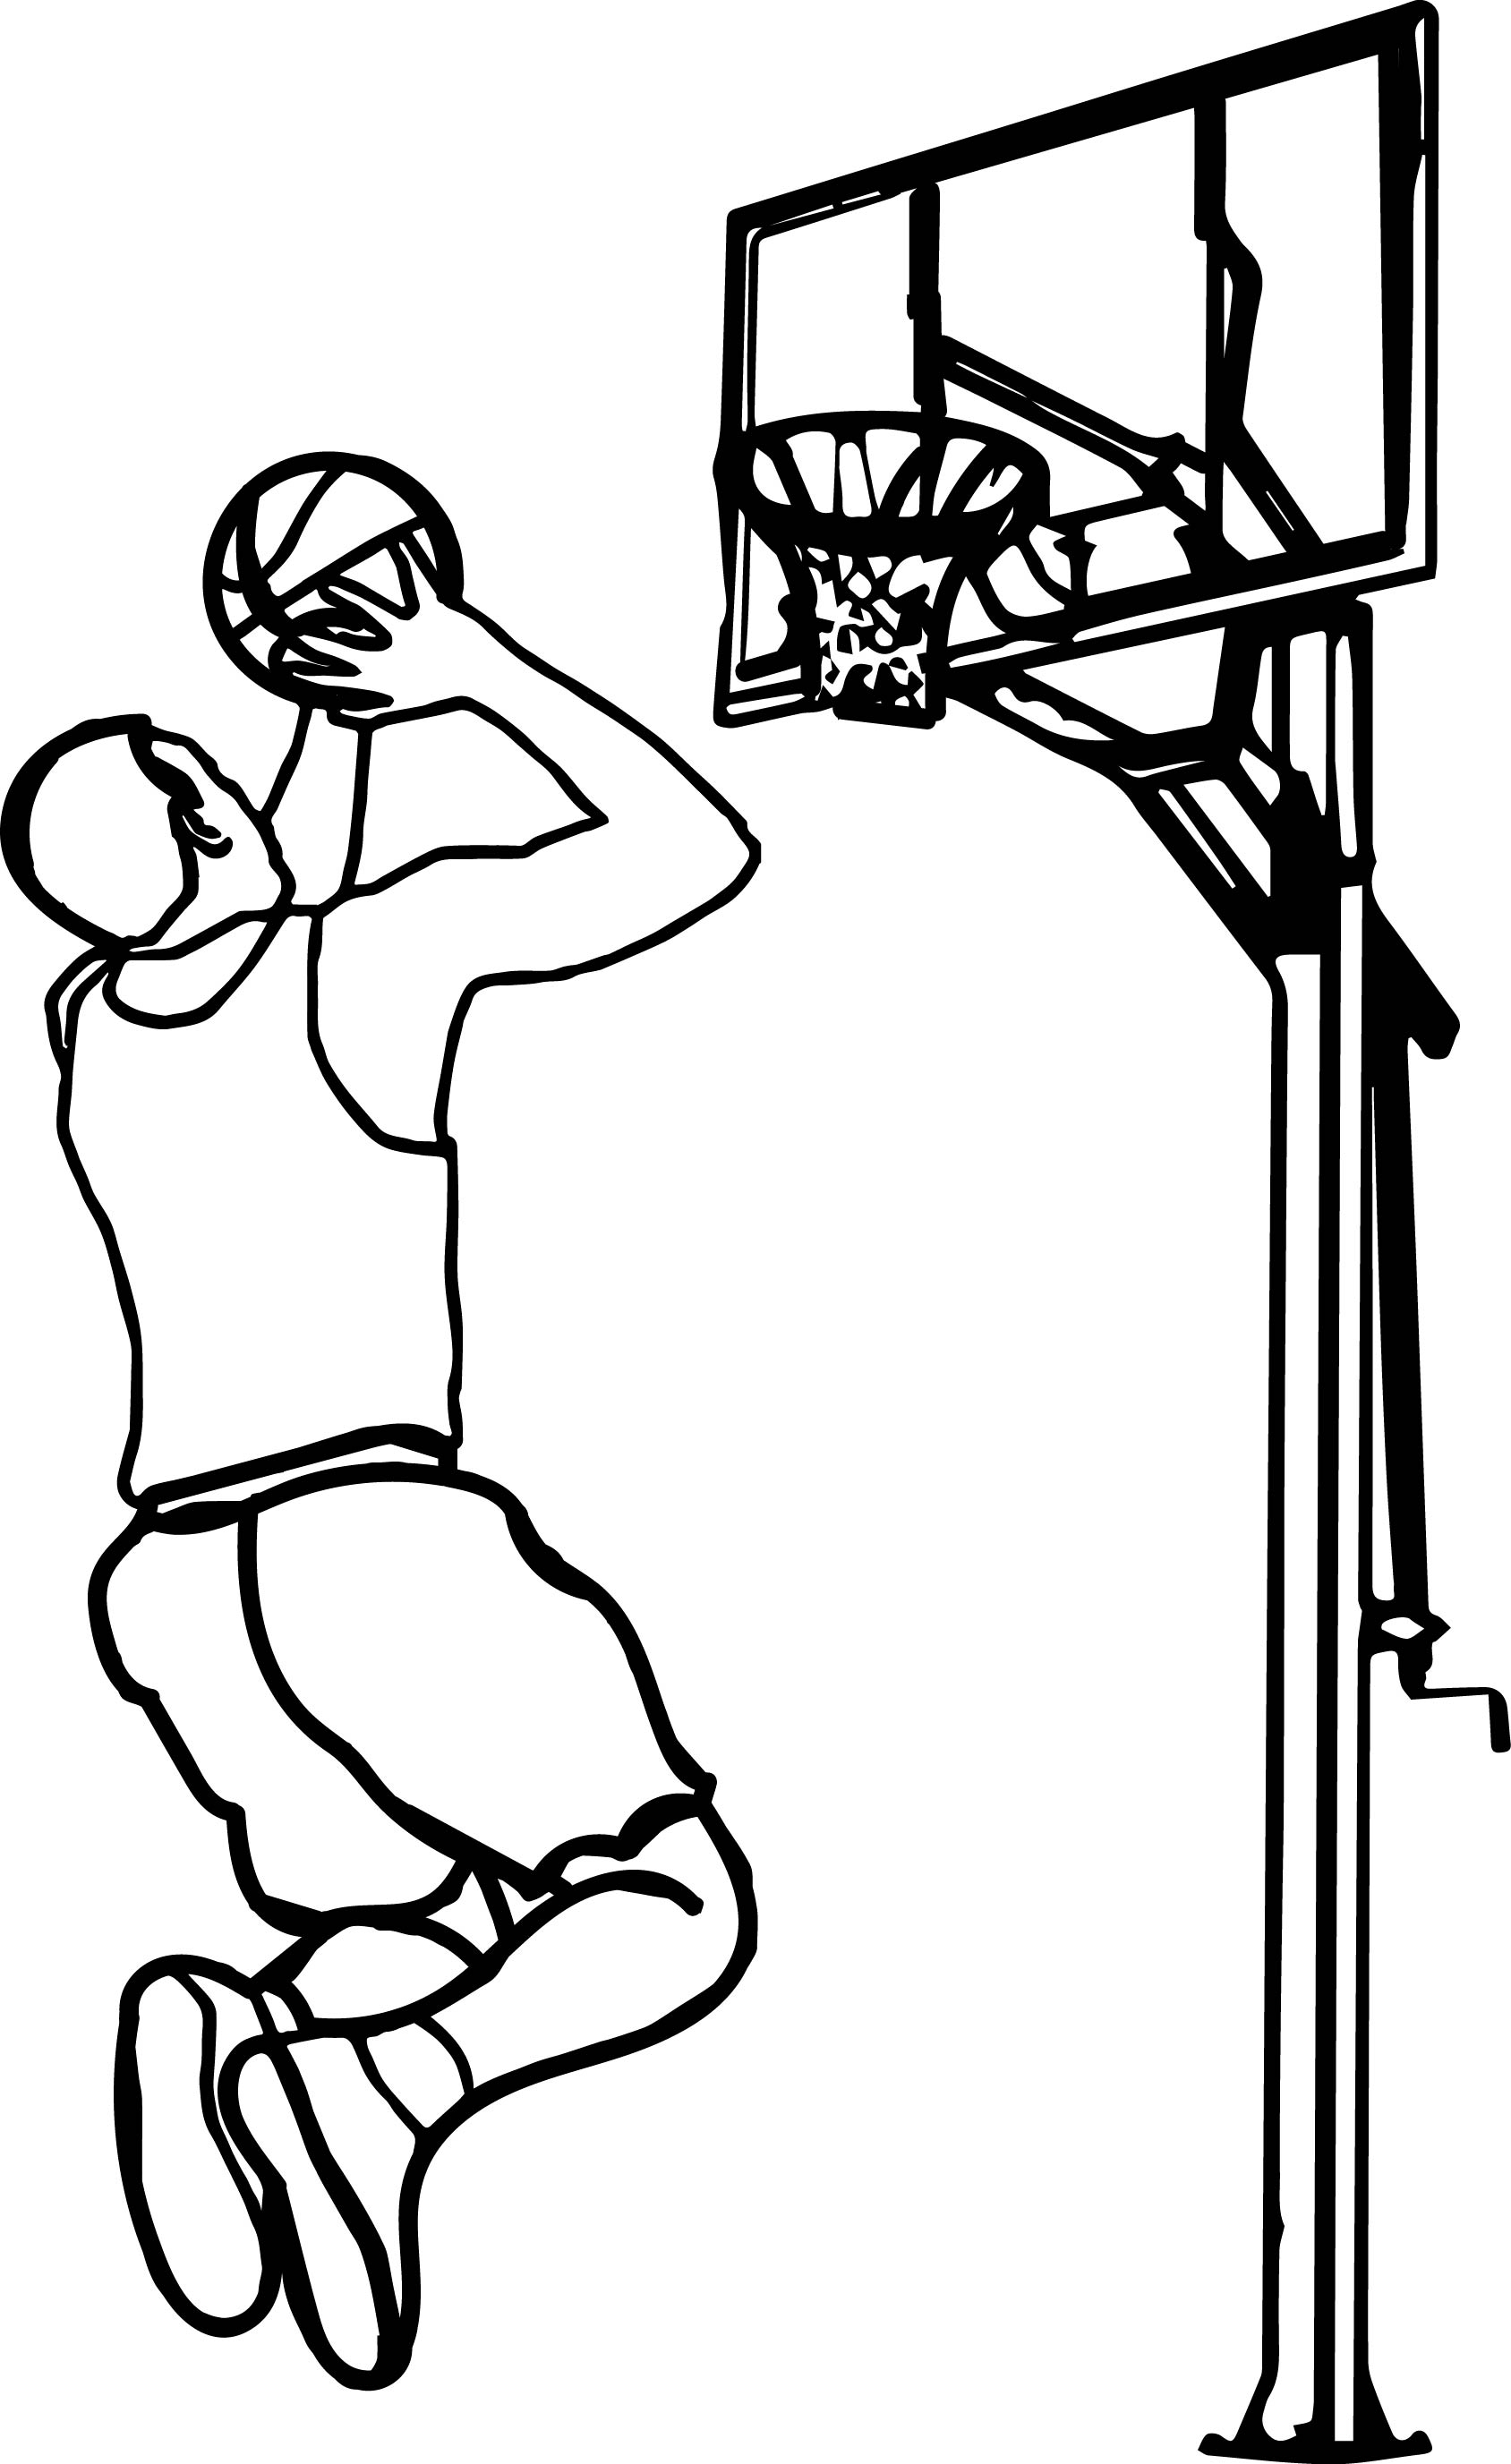 The Basketball Clipart For My Friend Thatrsquos You Playing.